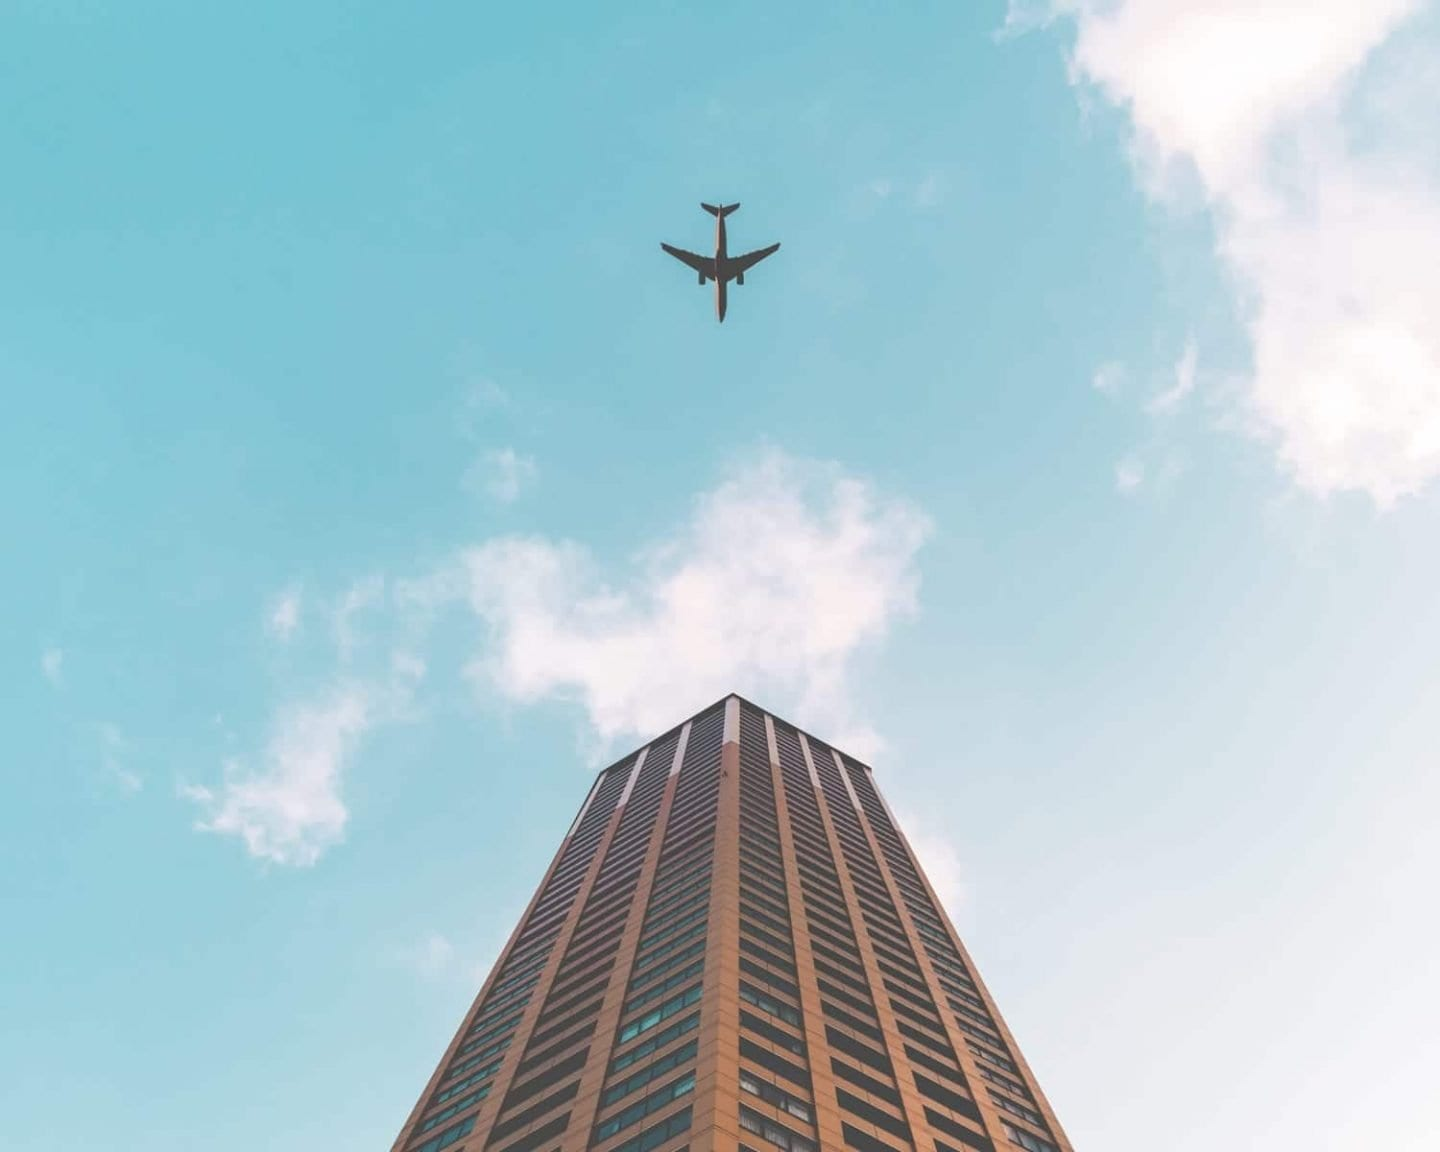 plane over building